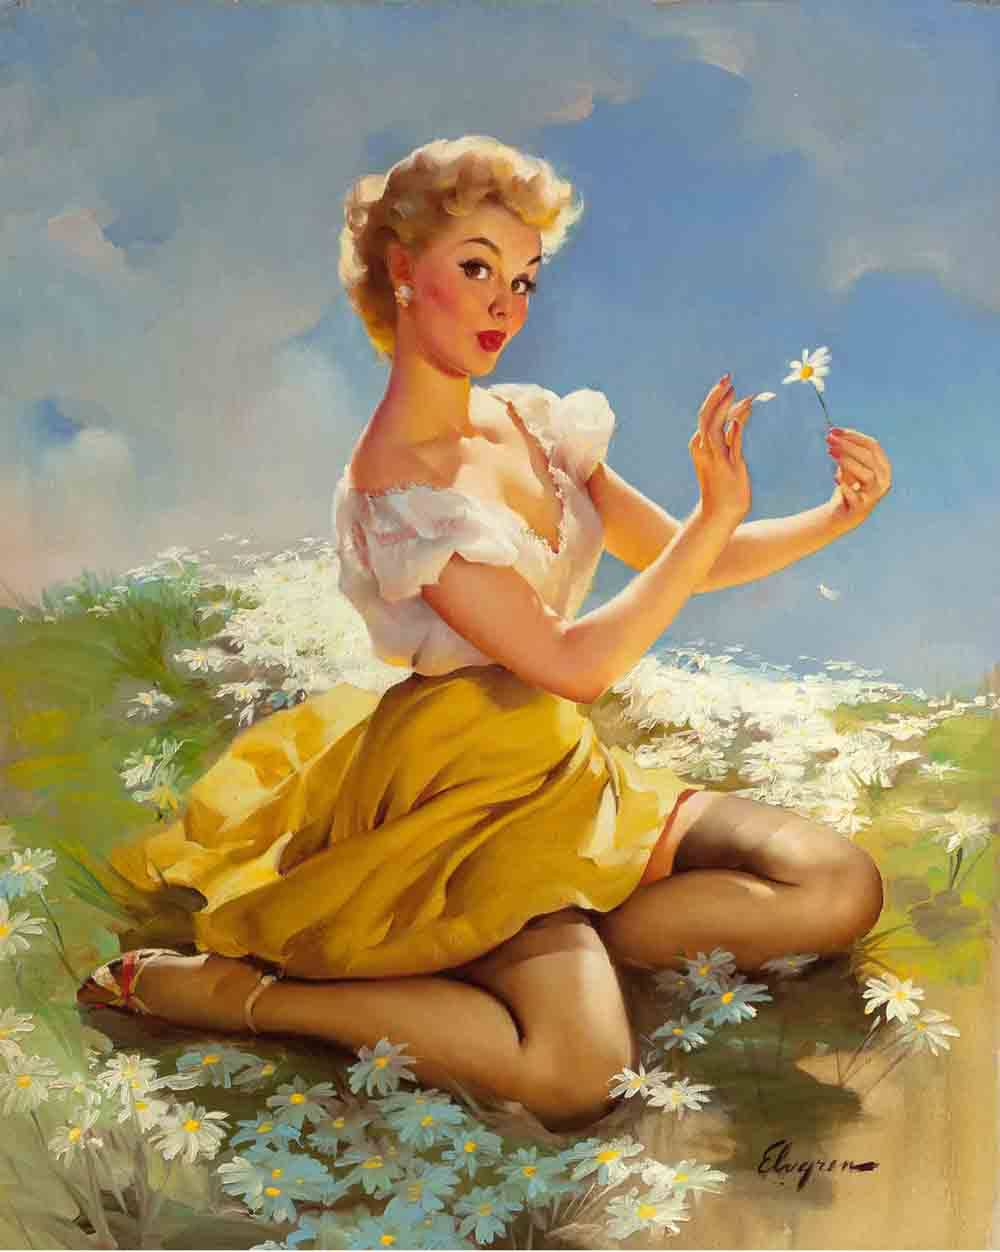 Daisies Are Telling. Artist: Gil Elvgren Home & Garden > Decor > Artwork > Posters, Prints, & Visual Artwork ArtToyourlife